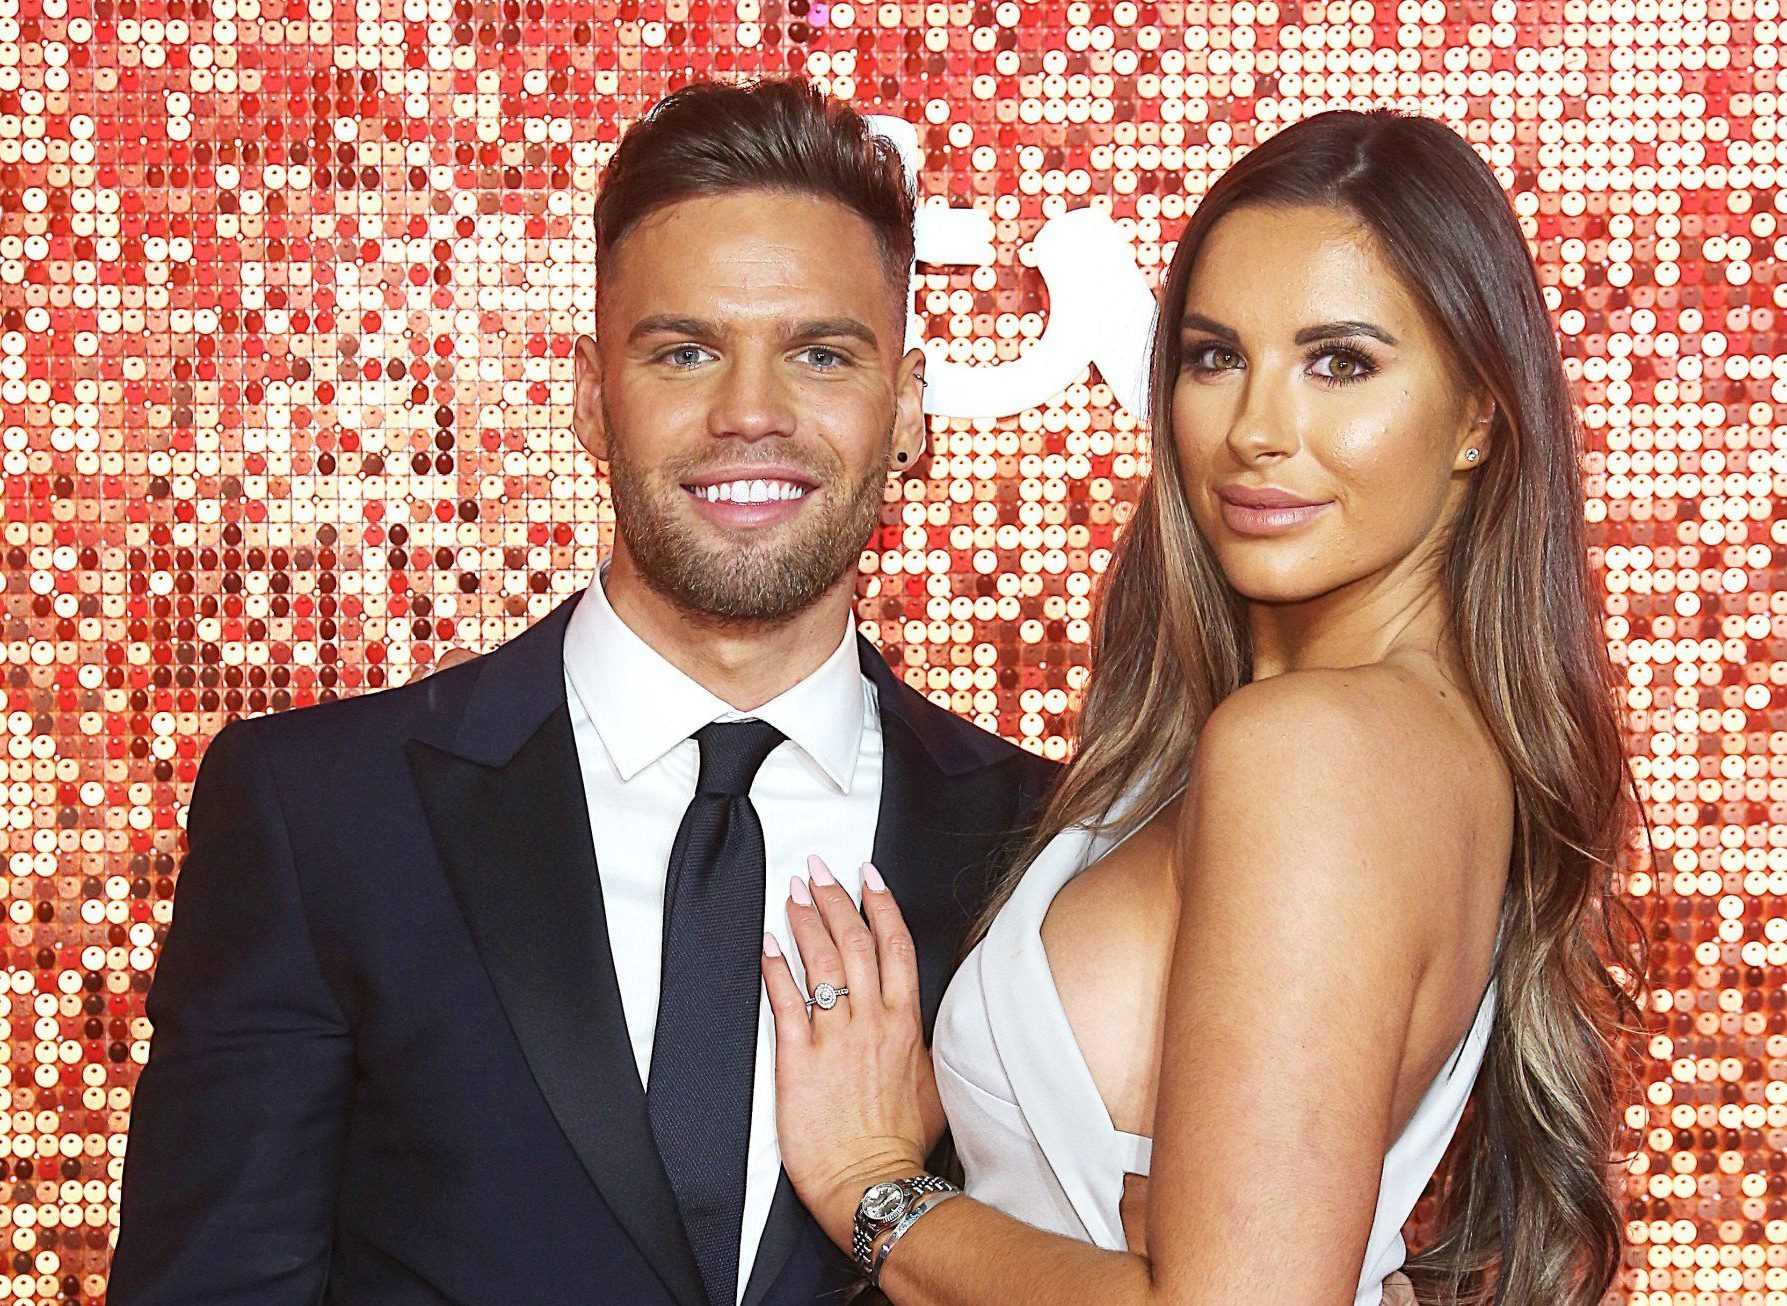 Love Island's Jess Shears and fiancé Dom Lever are 'desperate' for a baby